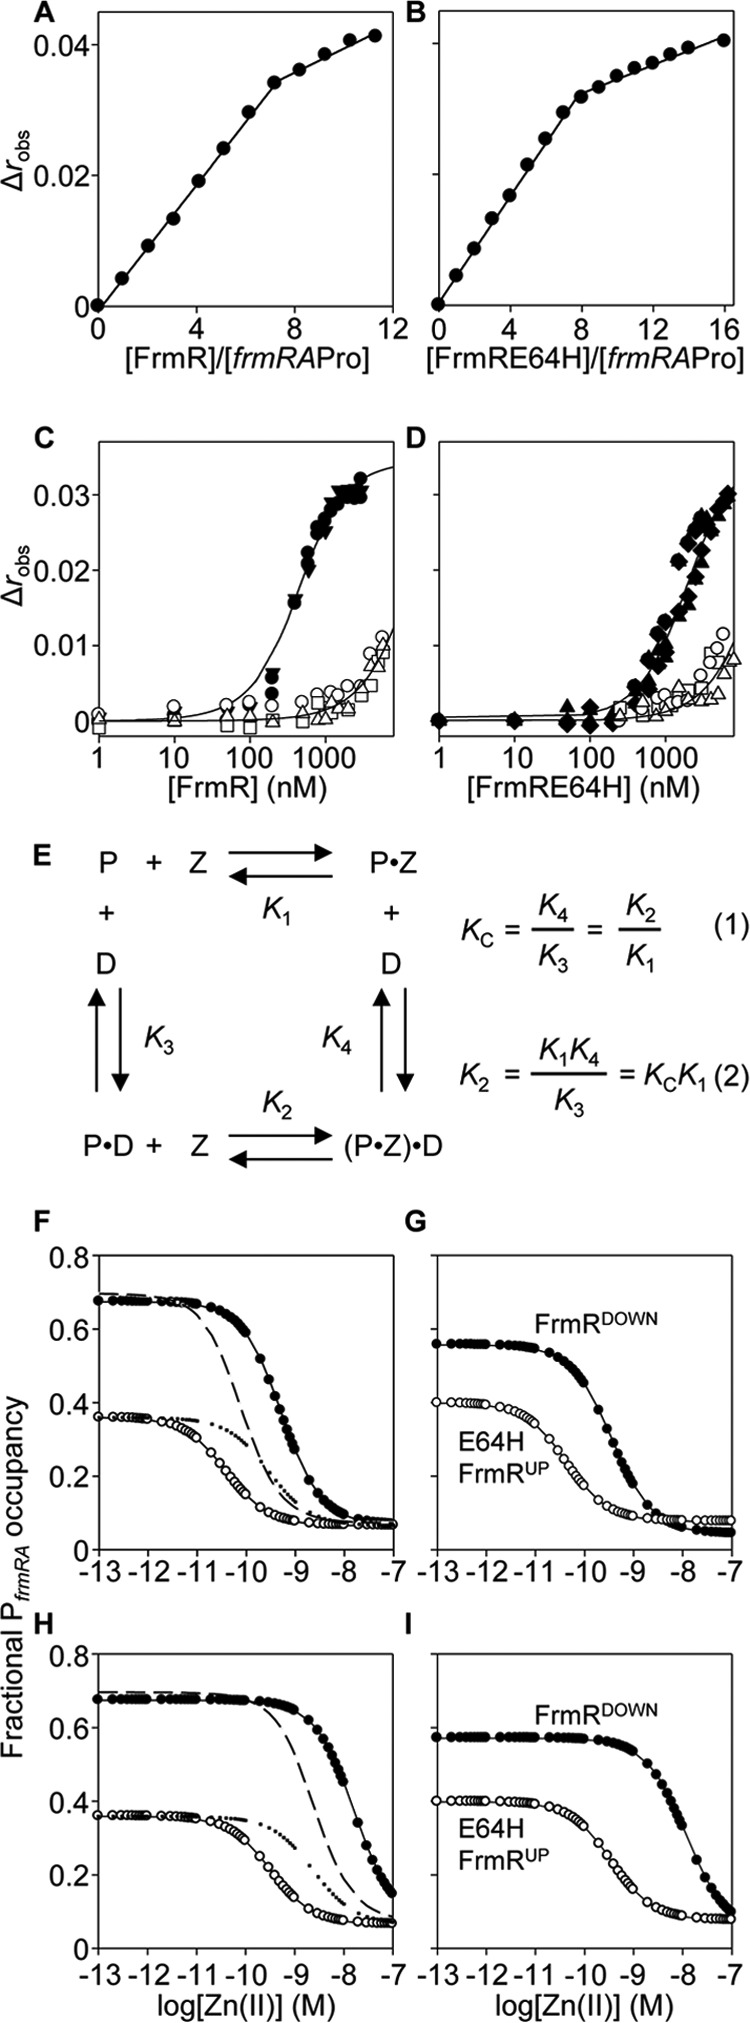 Zn(II) weakens K DNA of FrmR and FrmRE64H and its effect on DNA occupancy. Anisotropy change upon titration of a high concentration of frmRA Pro (2.5 μ m ) with FrmR ( A ), FrmRE64H ( B ), or a limiting concentration of frmRA Pro (10 n m ) ( C ) with apo-FrmR in the presence of 5 m m EDTA ( closed symbols ) or Zn(II)-FrmR in the presence of 5 μ m ZnCl 2 ( open symbols ). D , as C but using FrmRE64H. Symbol shapes represent individual experiments. Data were fit to a model describing a 2:1 protein tetramer (nondissociable):DNA stoichiometry (binding with equal affinity), and lines represent simulated curves produced from the average K DNA determined across the experimental replicas shown. E , coupled thermodynamic equilibria (assuming a closed system) describing the relationship between FrmR tetramer ( P ), Zn(II) ( Z ), and P frmRA ( D ) ( 9 , 65 , 66 ). The coupling constant ( K C ) is determined from the ratio K 4 / K 3 ( K DNA Zn(II)·FrmR / K DNA FrmR ) ( Equation 1 ) and used to calculate K 2 (the Zn(II) affinity of the DNA-bound protein, K Zn(II) FrmR·DNA ) from K 1 (K Zn(II) FrmR ) (Equation 2). F, calculated fractional occupancy of P frmRA with FrmR ( filled circles ) and FrmRE64H ( open circles ) as a function of (buffered) [Zn(II)], which incorporates the determined FrmR or FrmRE64H abundance, K Zn(II) sensor (off DNA), and K DNA ( Table 1 ). Additional lines represent hypothetical fractional occupancy of P frmRA with FrmRE64H but substituting K Zn(II) ( dotted ) or K DNA ( dashed ) for that of FrmR. G, as F but using the determined abundance for FrmR DOWN ( solid symbols ) and FrmRE64H UP ( open symbols ). H and I , as F and G , respectively, except using K Zn(II) sensor·DNA (on-DNA) (calculated using the equations in E ).